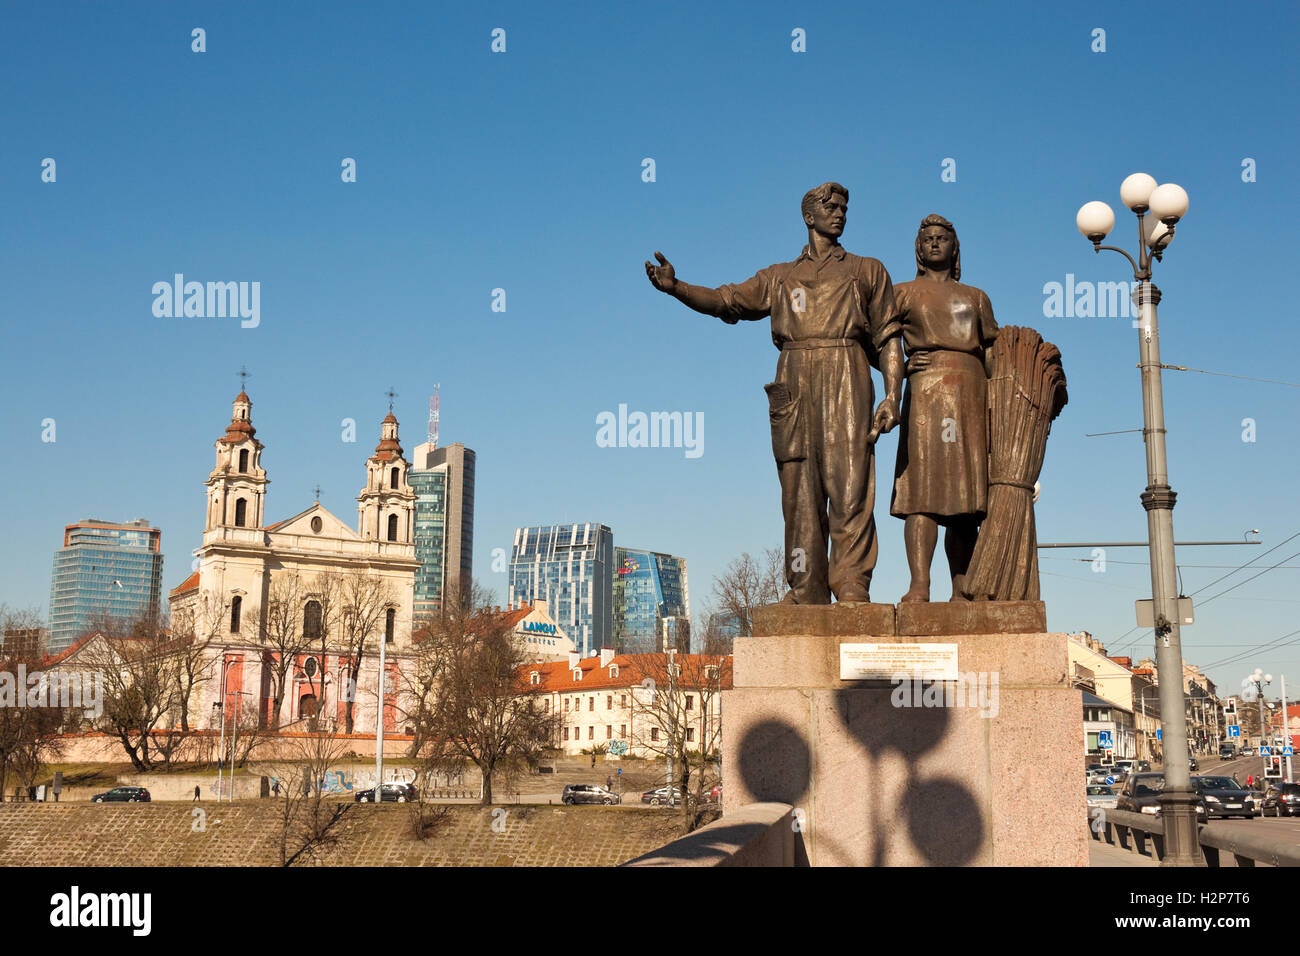 "Vilnius, Lithuania - March 16, 2015: Soviet realism sculptural group ""Agriculture"" on the Green bridge. Stock Photo"